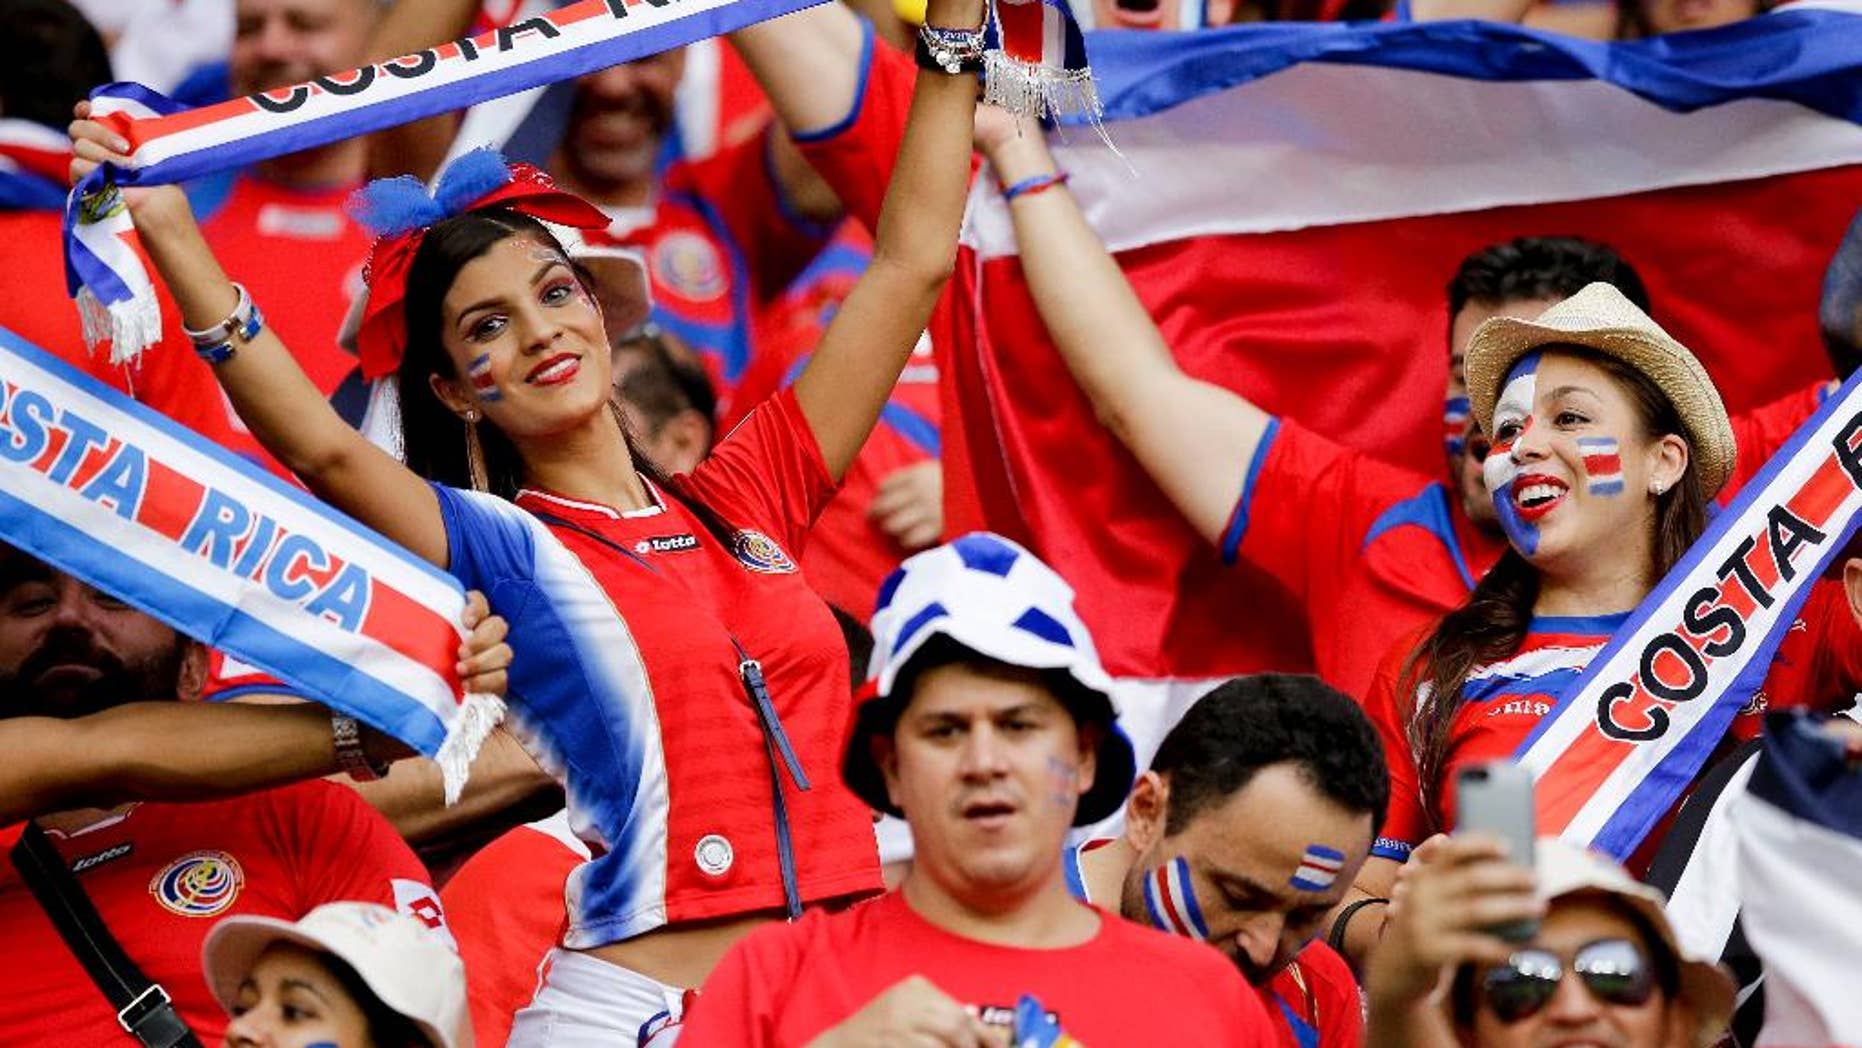 Costa Rican fans react before the World Cup quarterfinal soccer match between the Netherlands and Costa Rica at the Arena Fonte Nova in Salvador, Brazil, Saturday, July 5, 2014. (AP Photo/Matt Dunham)